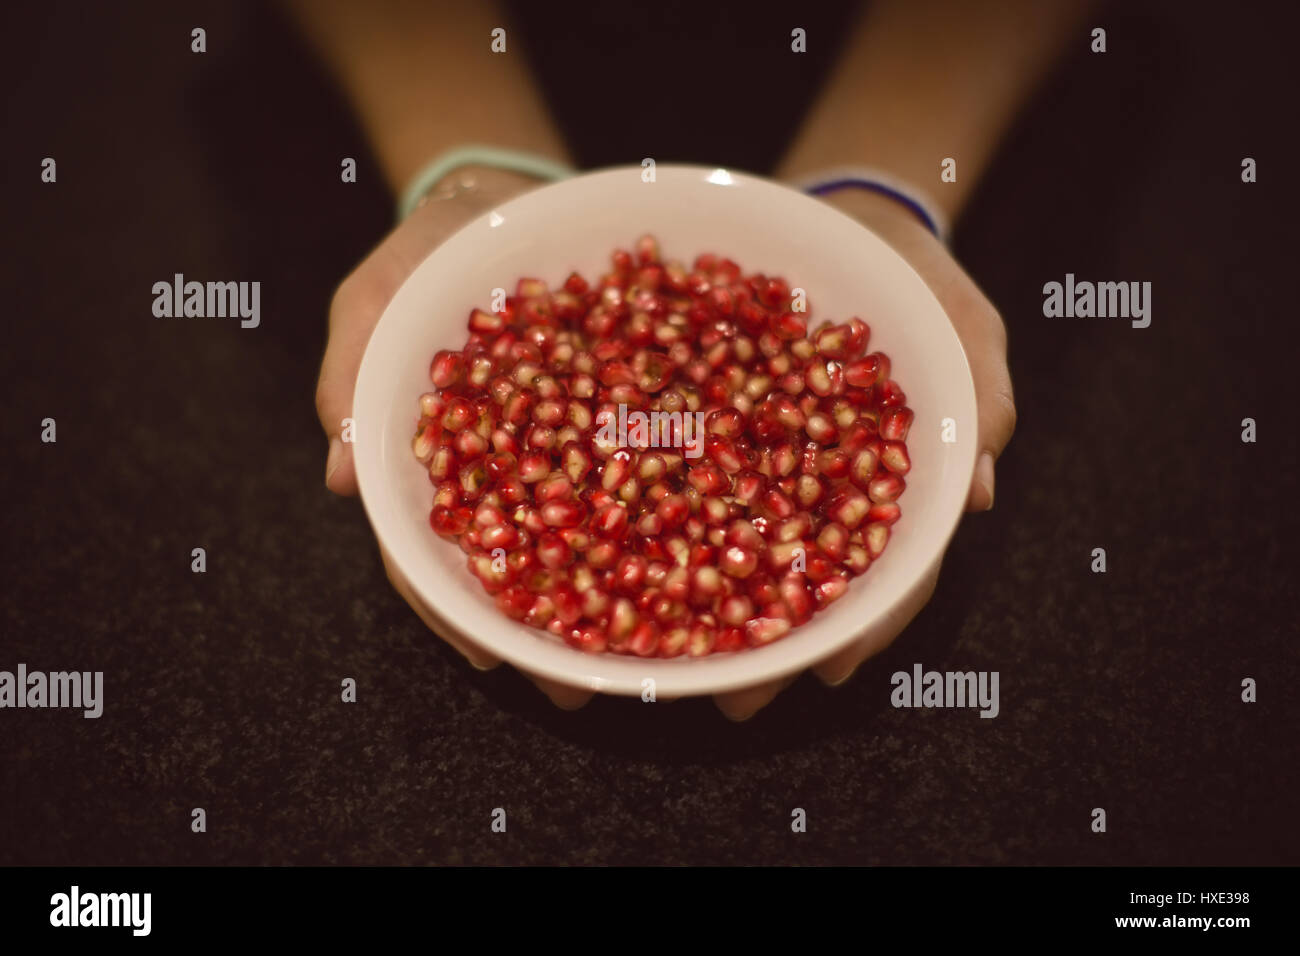 Close-up of hands holding bowl full of pomegranate - Stock Image